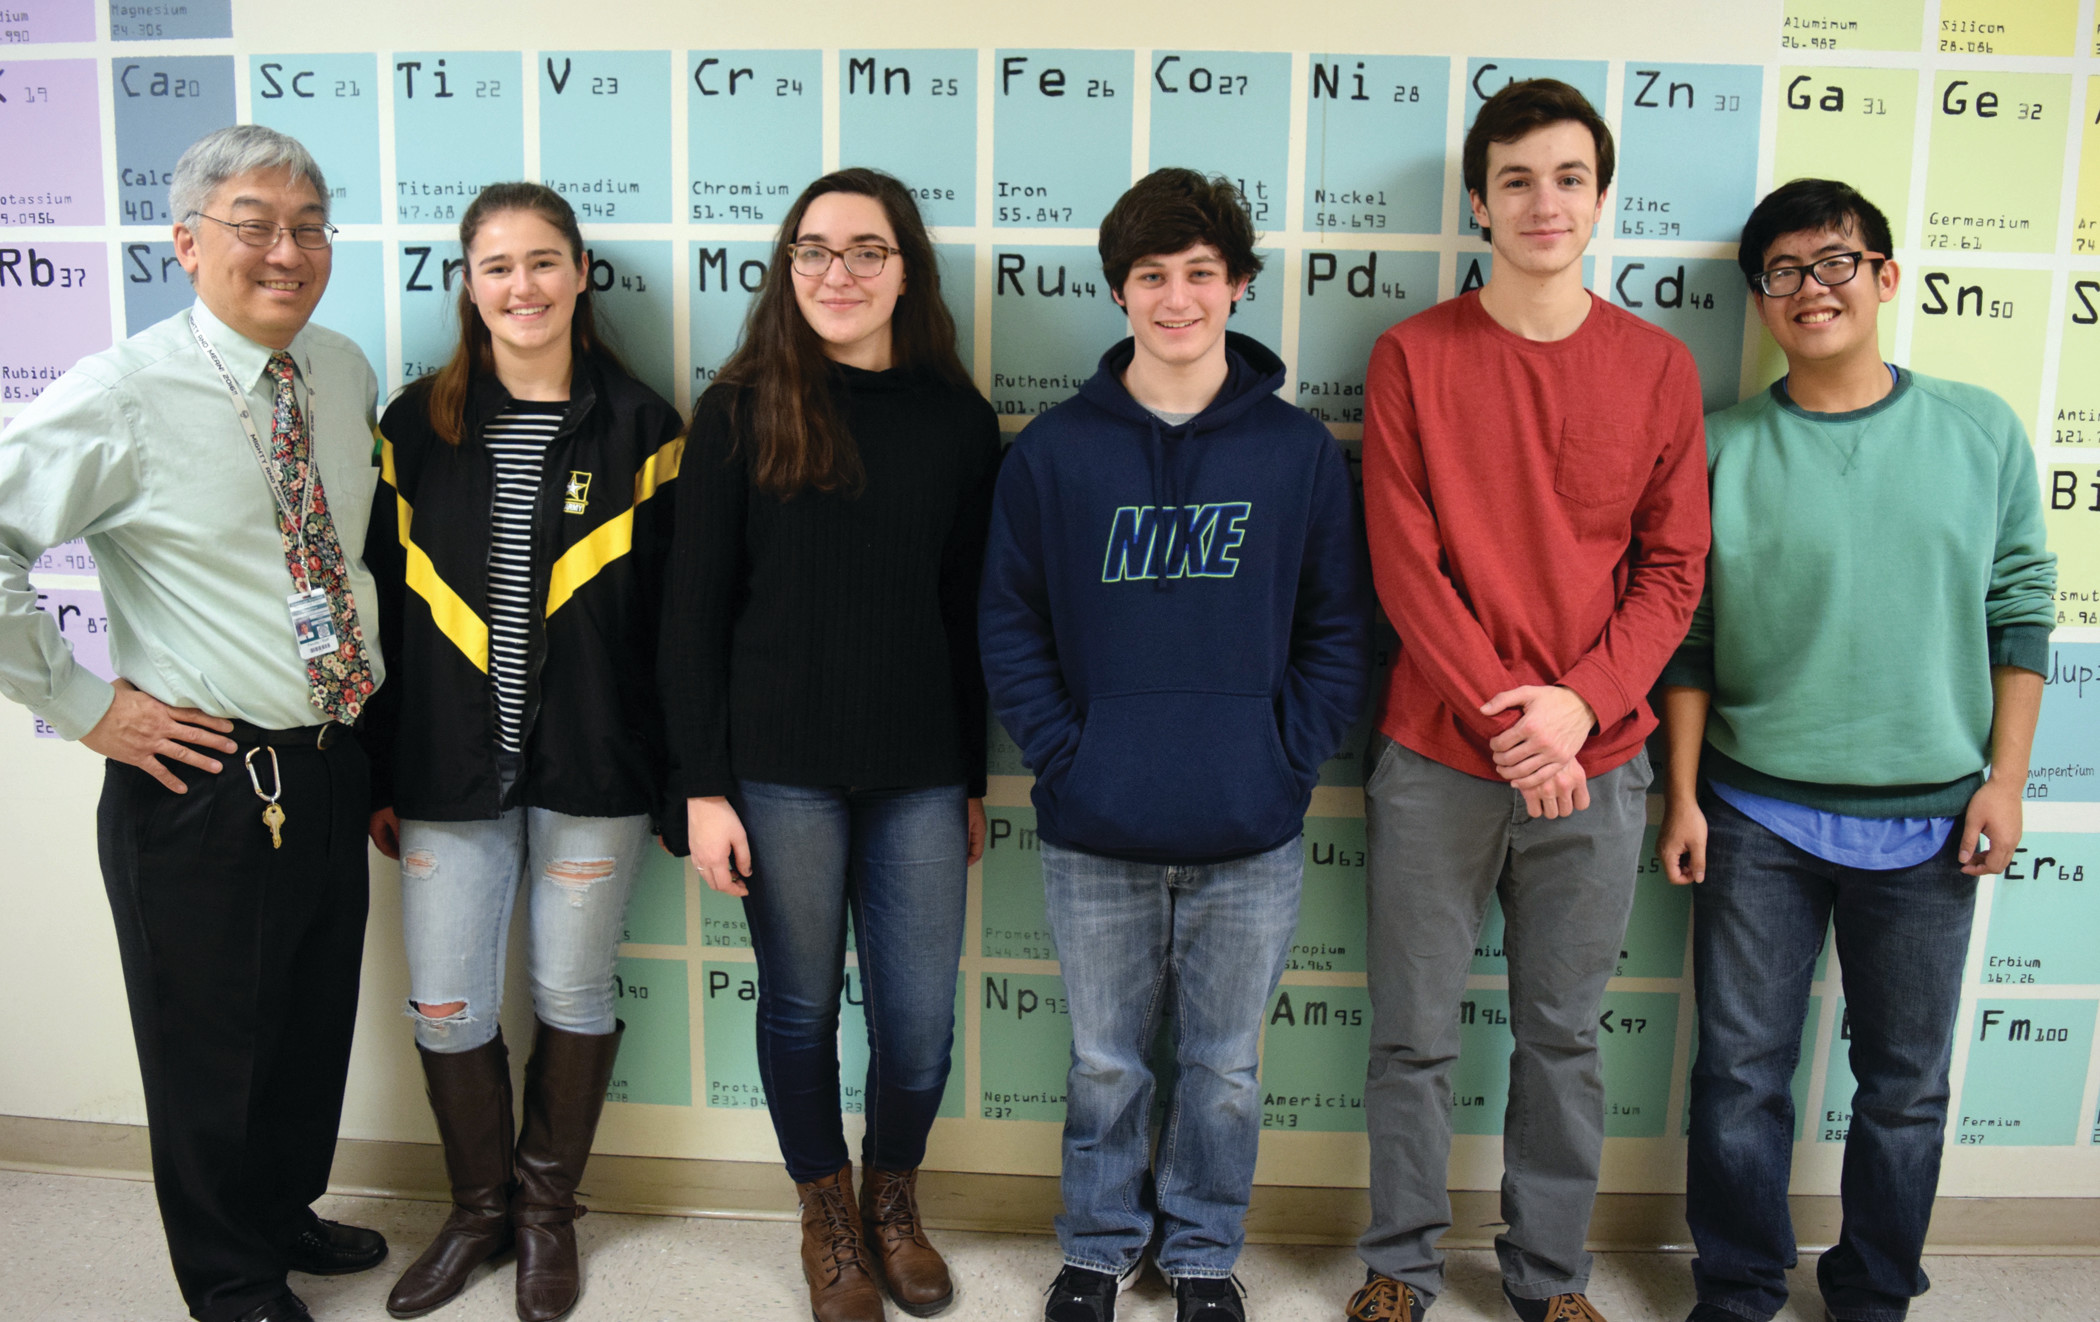 OCEAN STATE OF MIND: Cranston East is headed back to the Quahog Bowl, an ocean science knowledge competition, for the 13th time. From left to right: Coach Howard Chun, Ashley Paquin, Leah Struminski, Noah Gibb, Eli Hill and Sean Su.